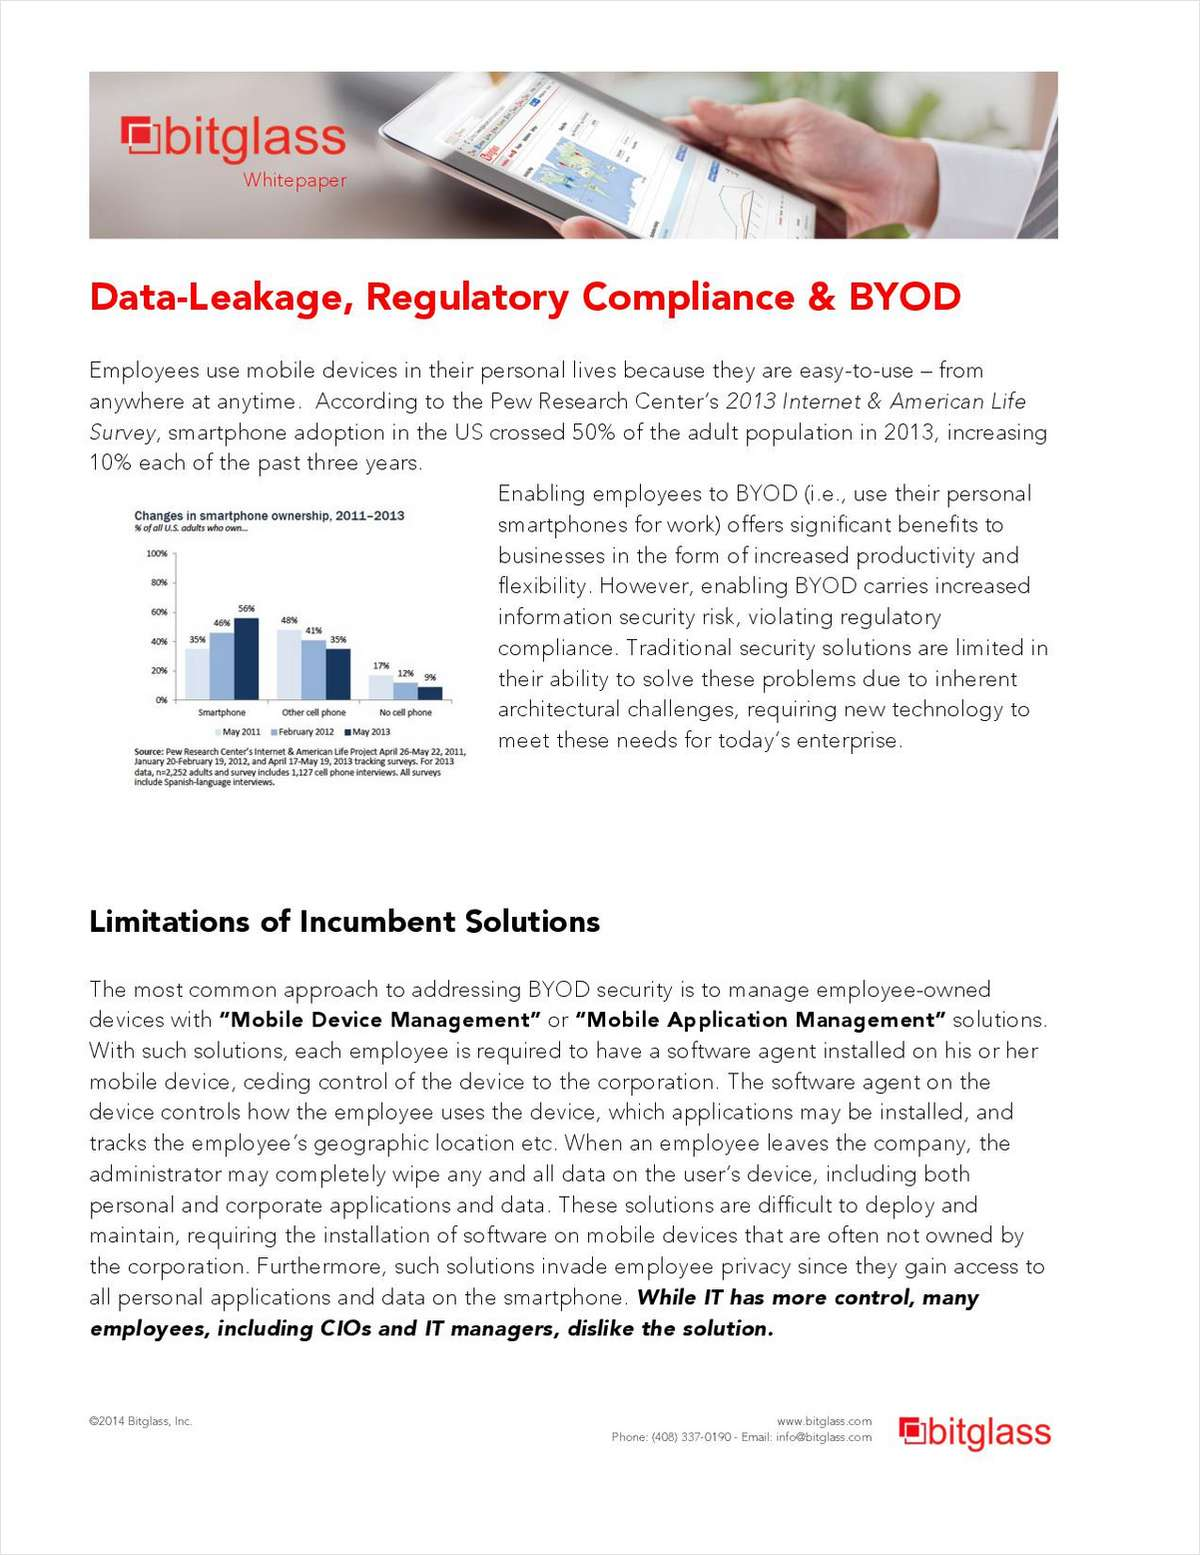 Data-Leakage, Regulatory Compliance & BYOD